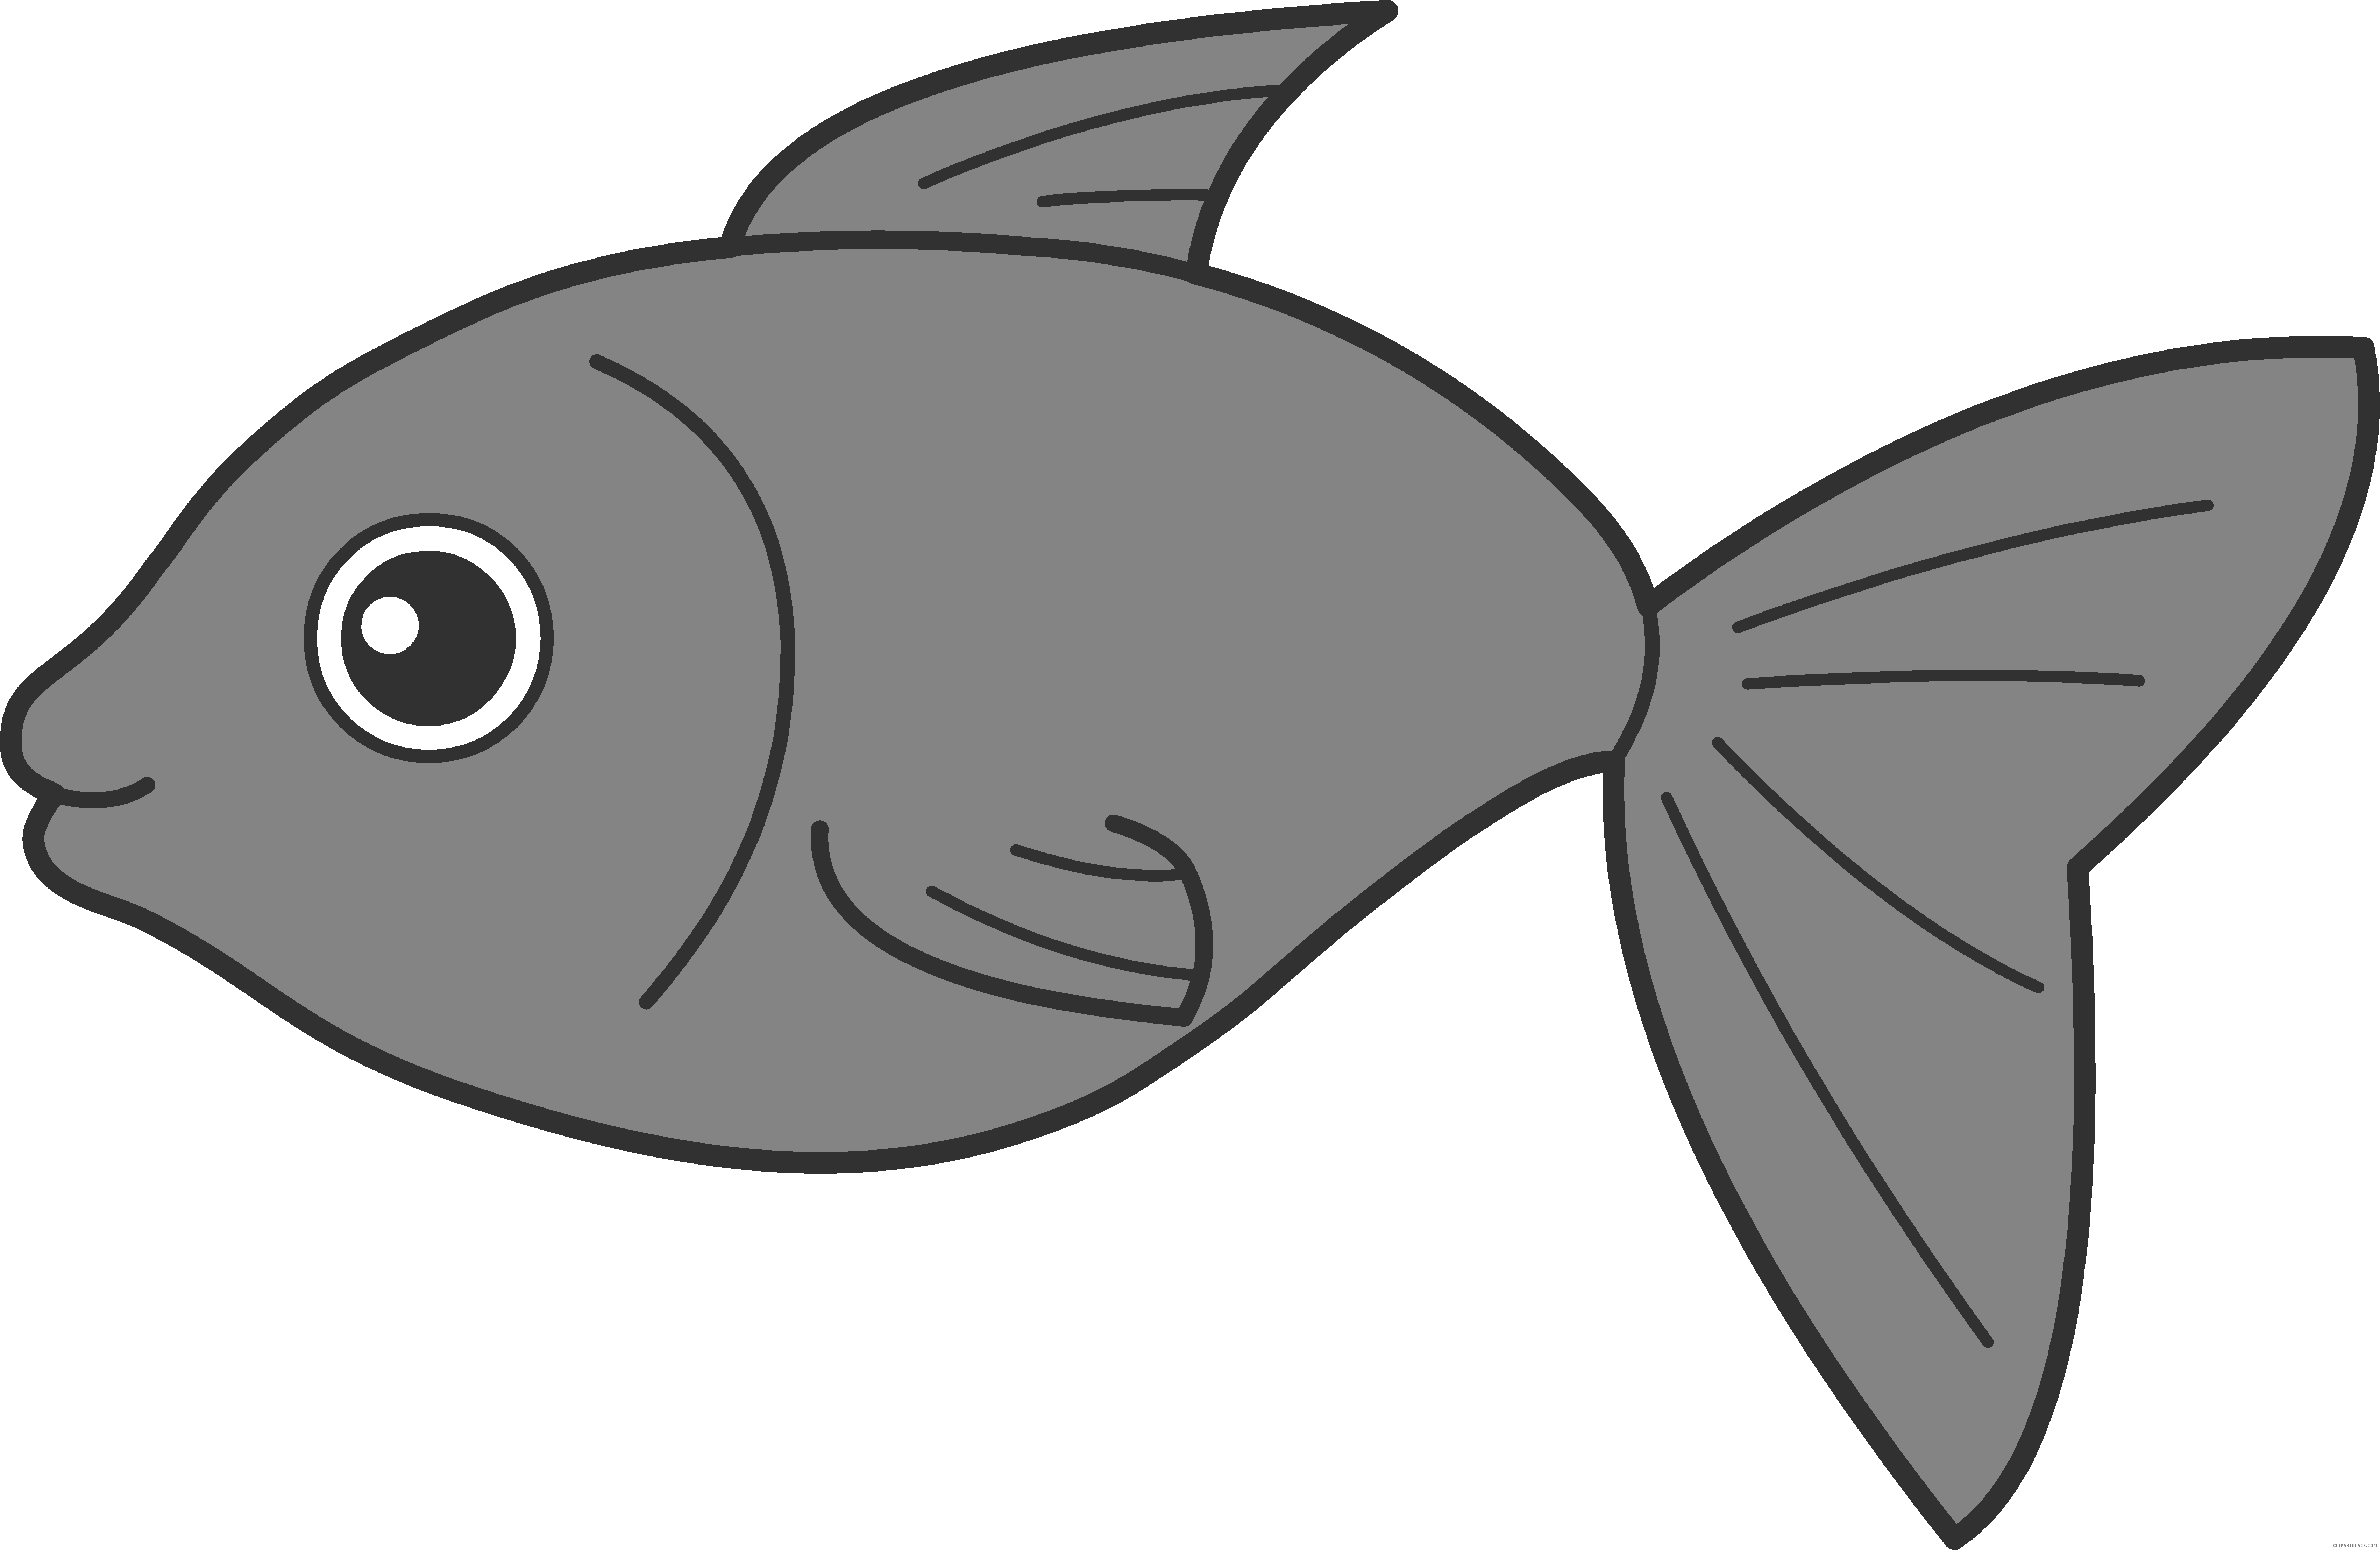 Clipart beta fish graphic transparent library Fish - Page 13 of 56 - ClipartBlack.com graphic transparent library